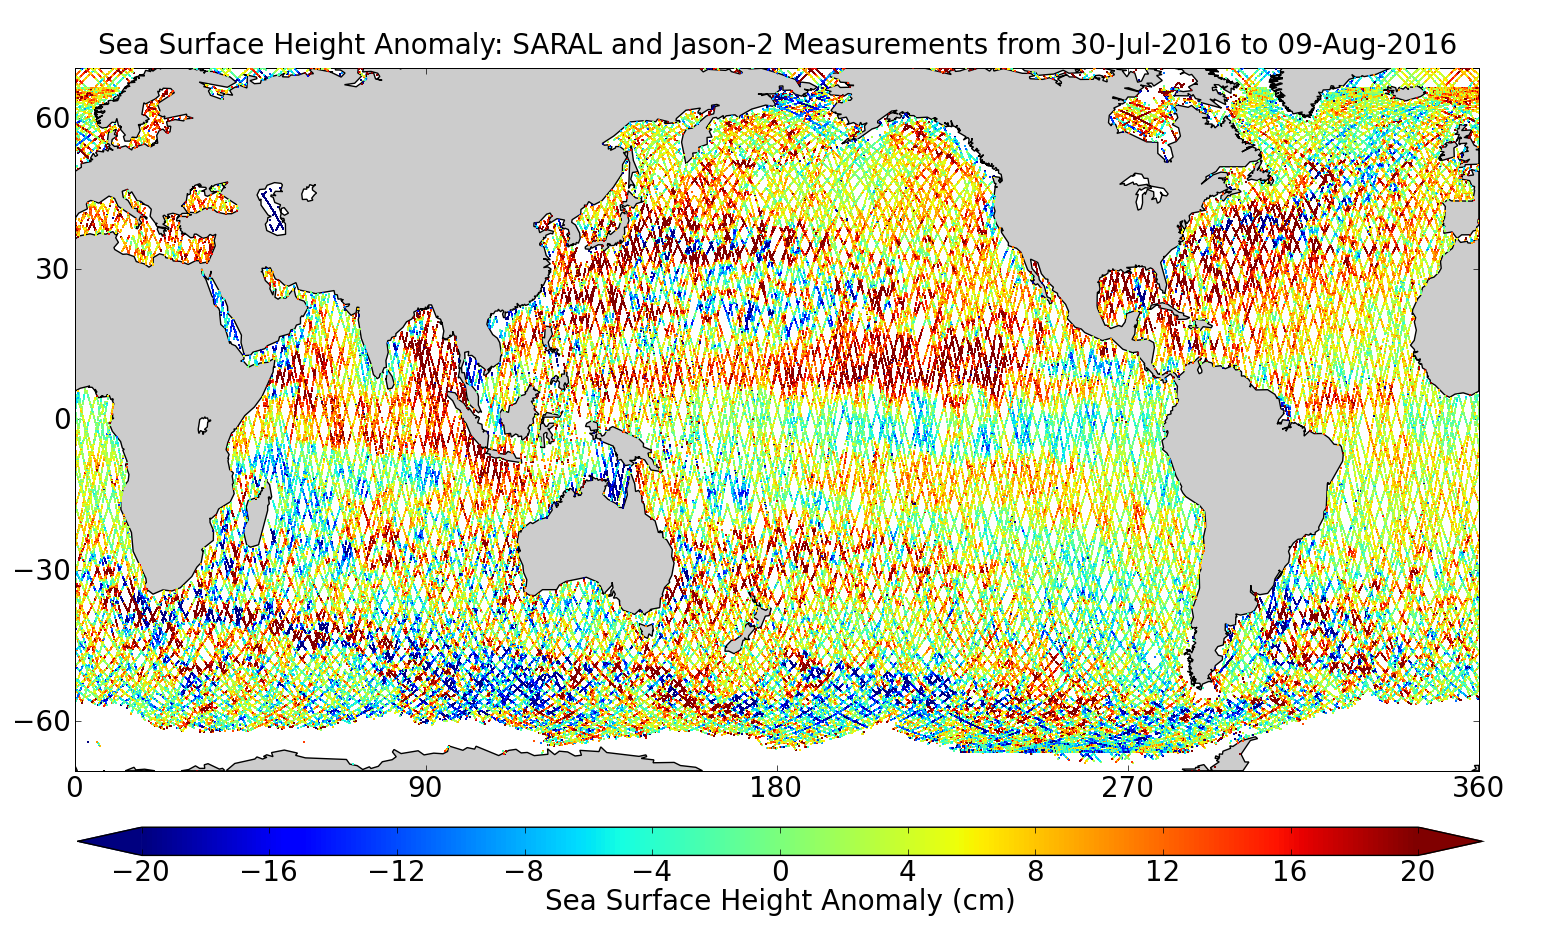 Sea Surface Height Anomaly: SARAL and Jason-2 Measurements from 30-Jul-2016 to 09-Aug-2016